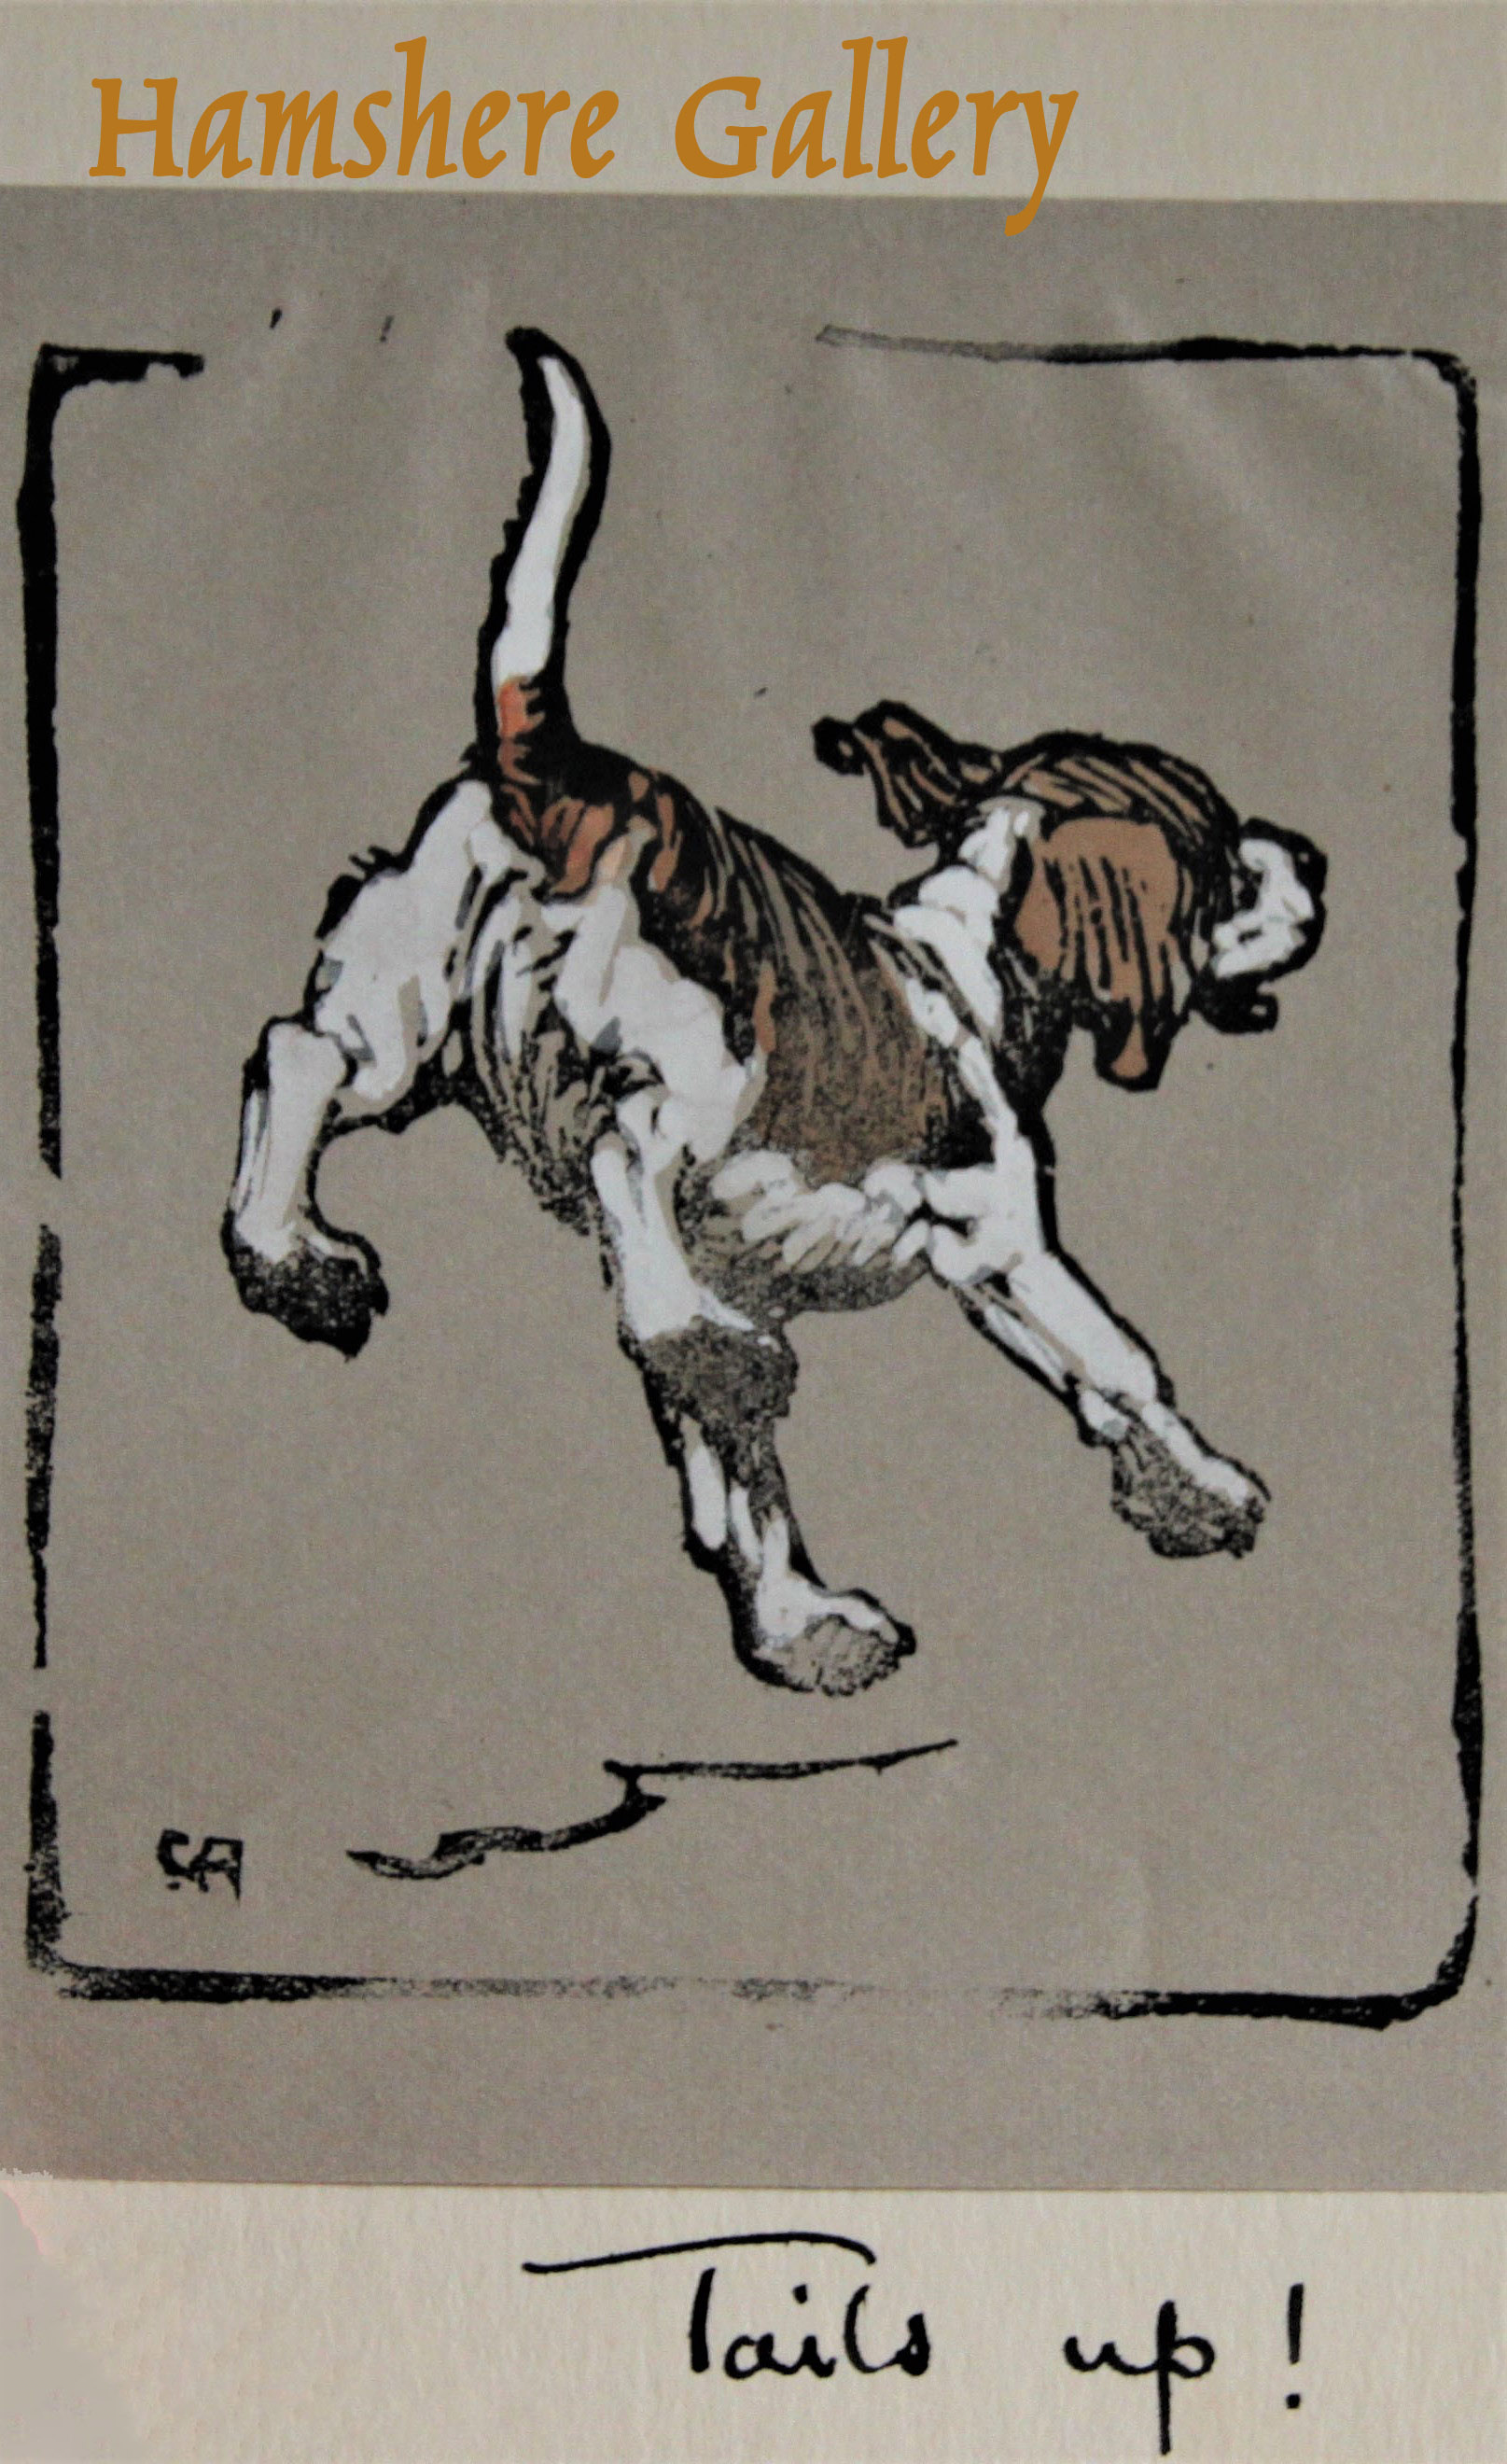 Click to see full size: A woodcut of a running Beagle by Christopher Gifford Ambler (English, 1886-1965)